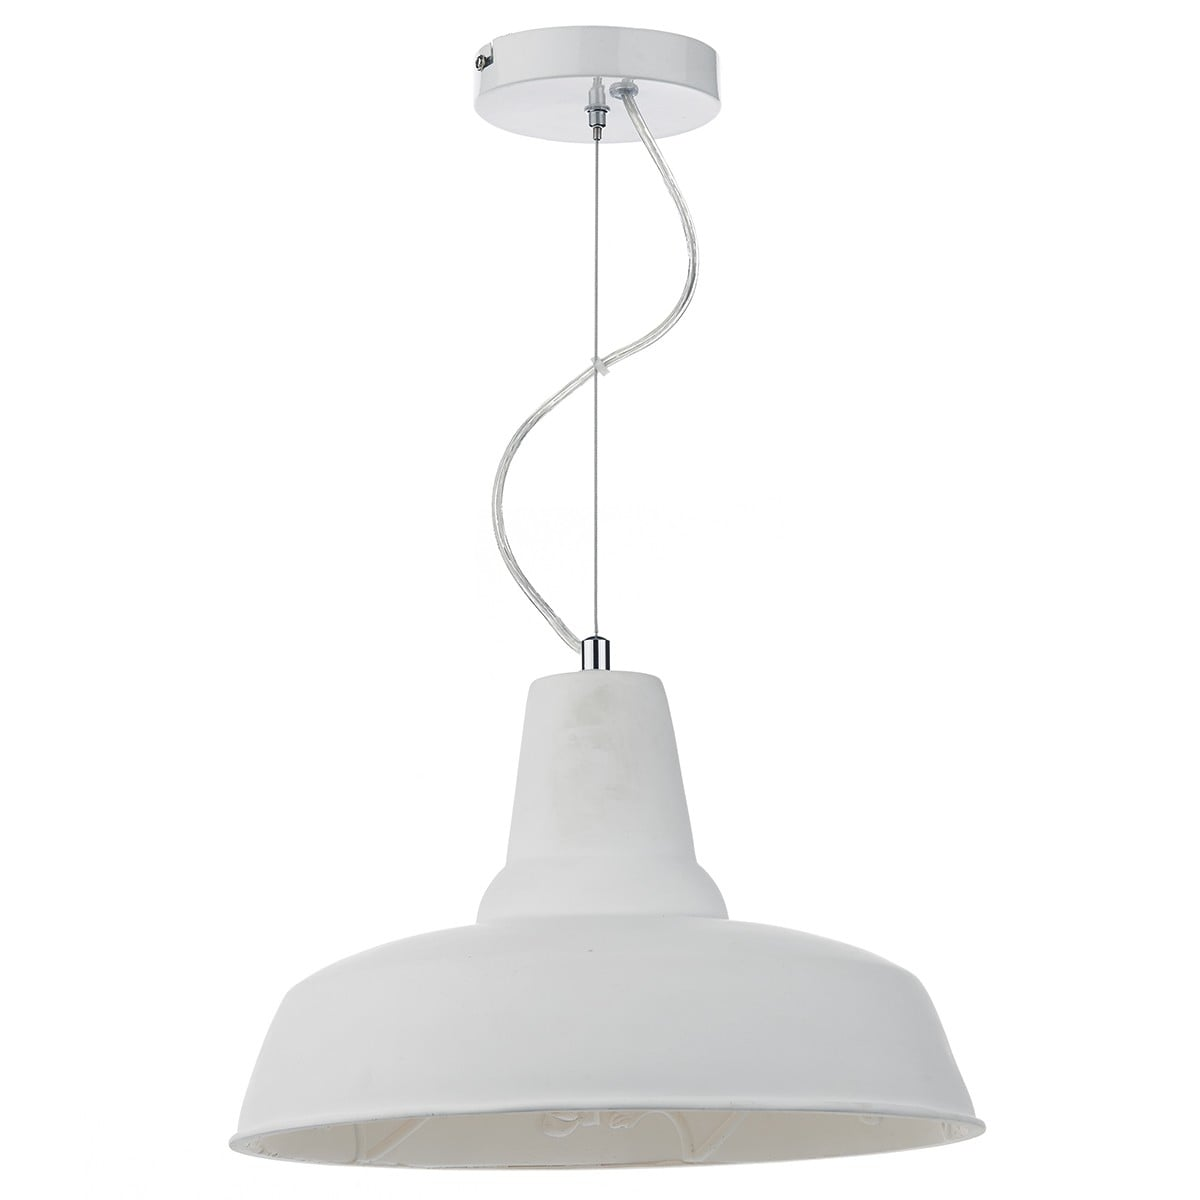 Dar DIG0125 Digby Single Pendant in Polished Chrome